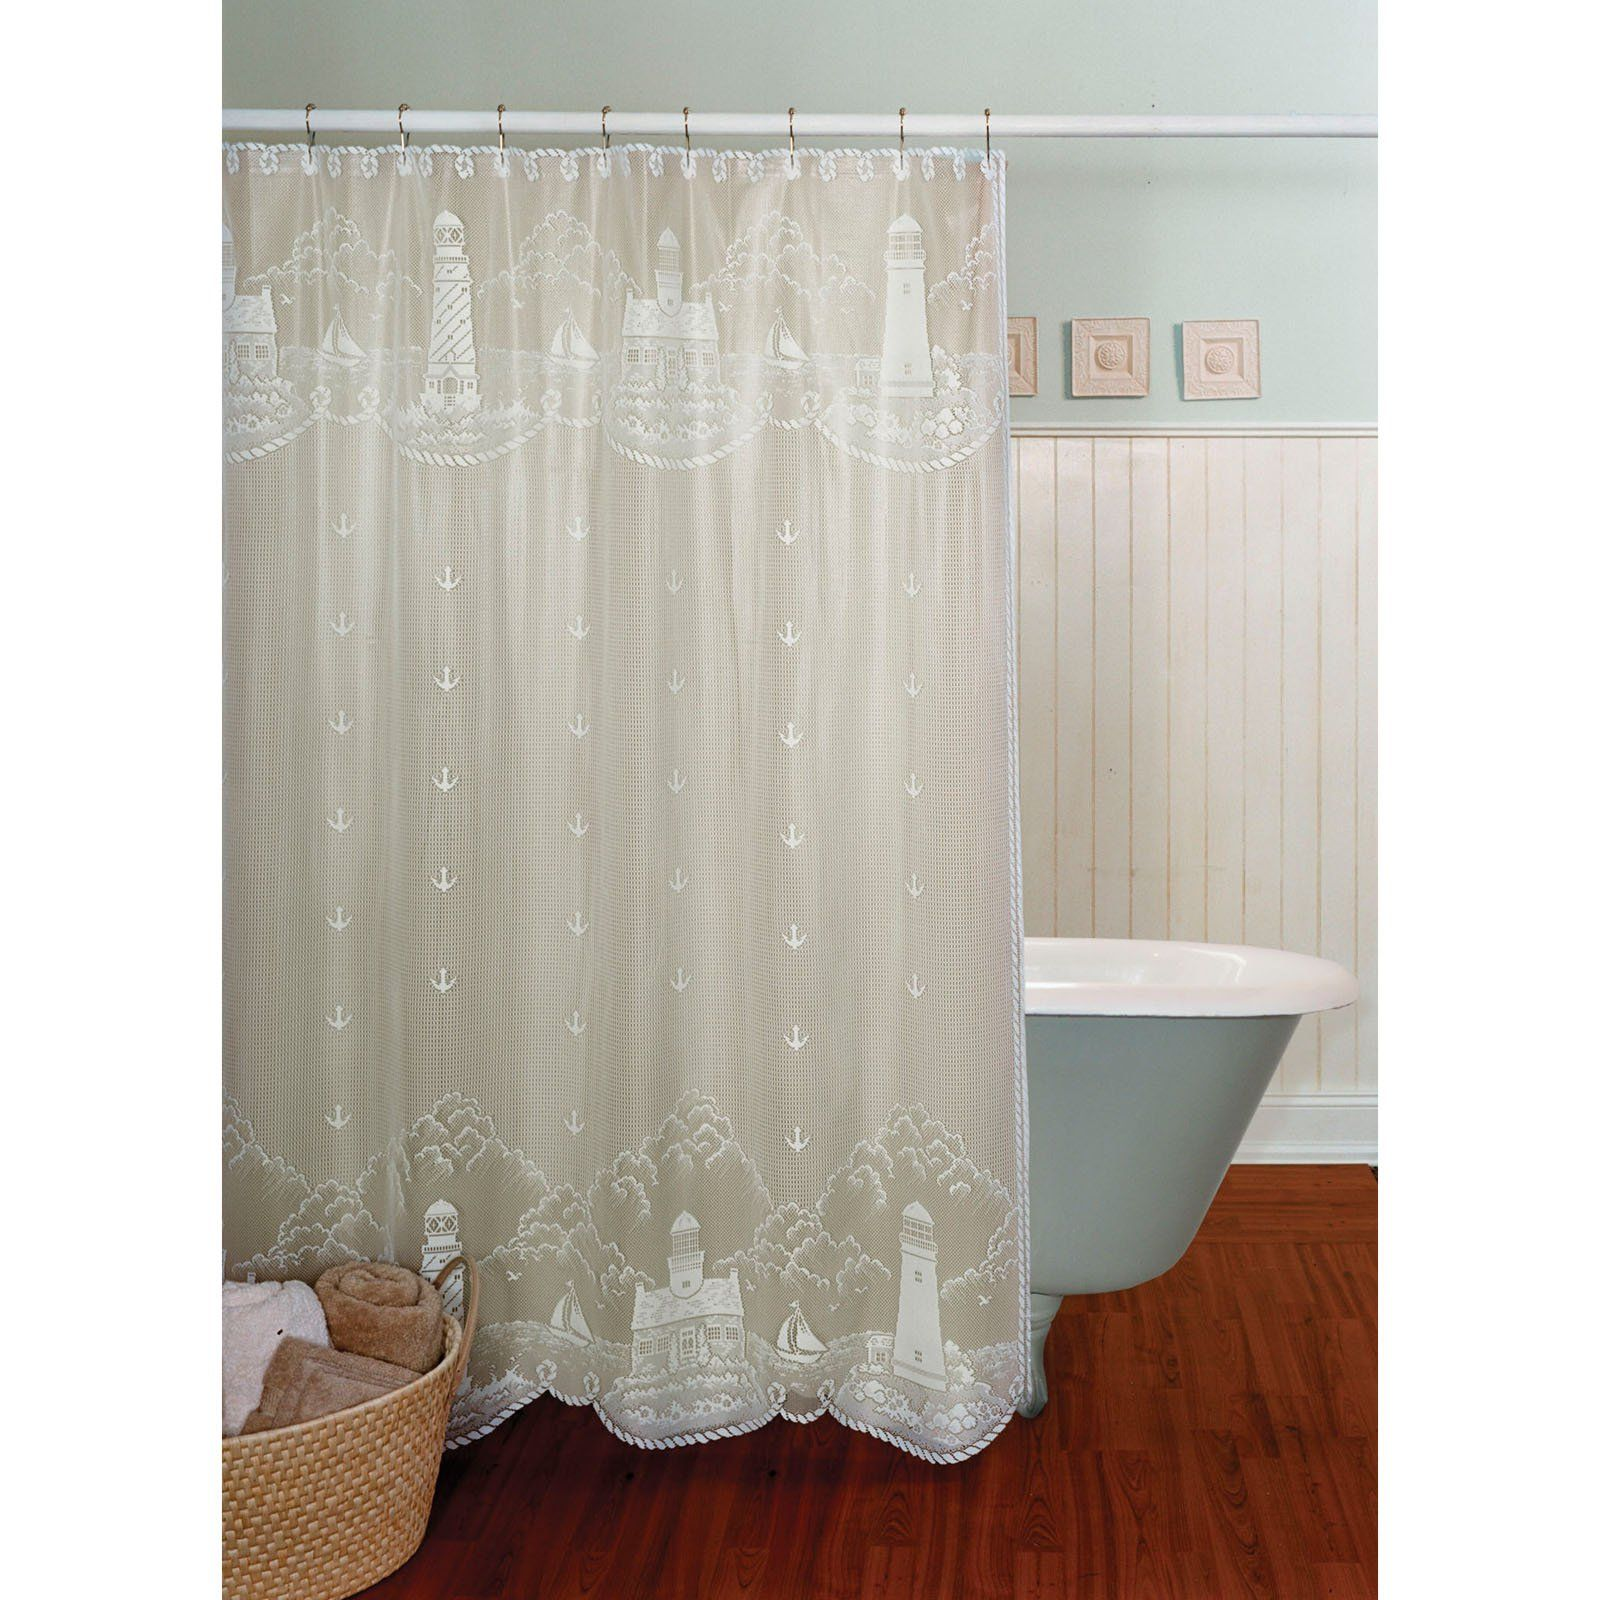 Exceptionnel Lighthouse White Shower Curtain 72 X 72   $30.99 @hayneedle